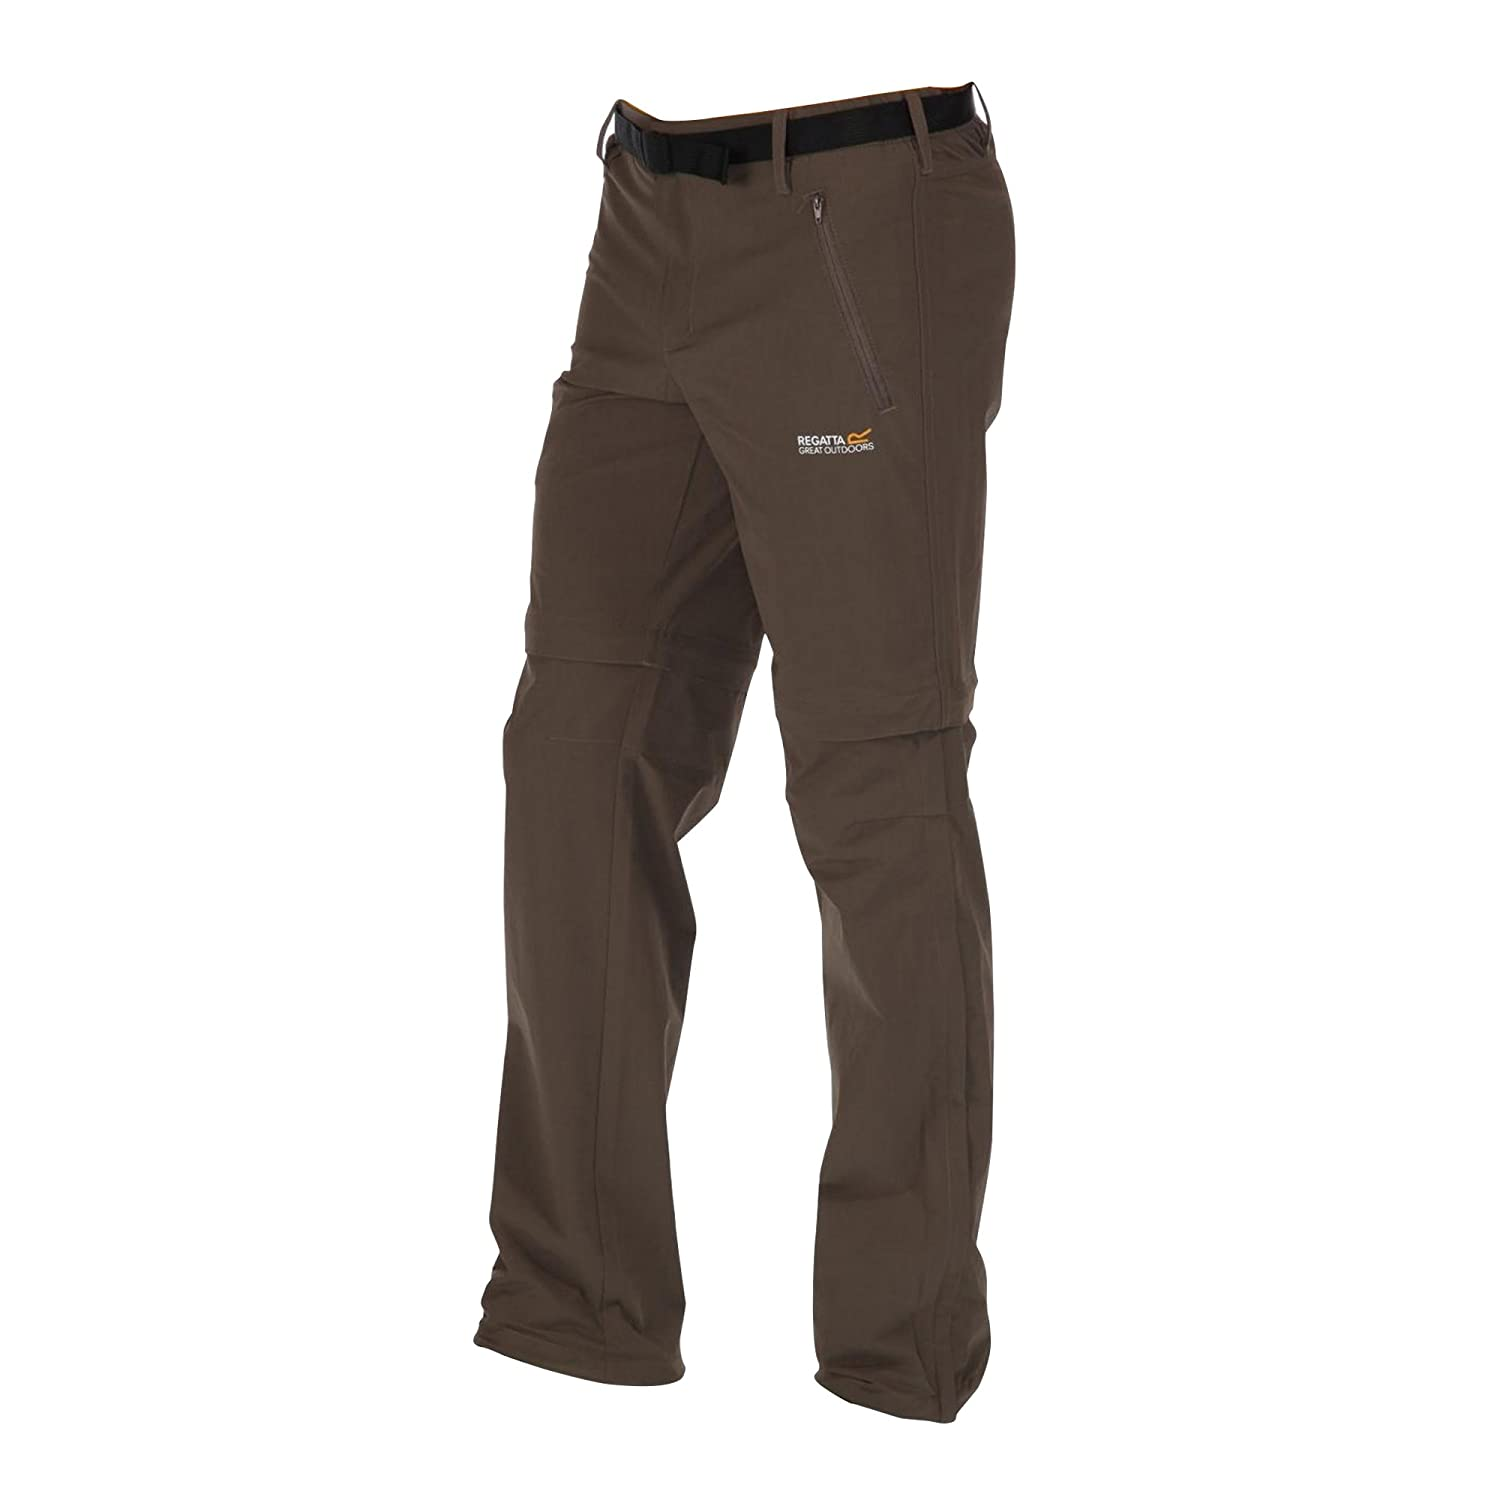 Regatta Xert Stretch Z/O II Trousers Men Short Seal Grau Größe DE 30 (Short Größe) 2019 Hose lang